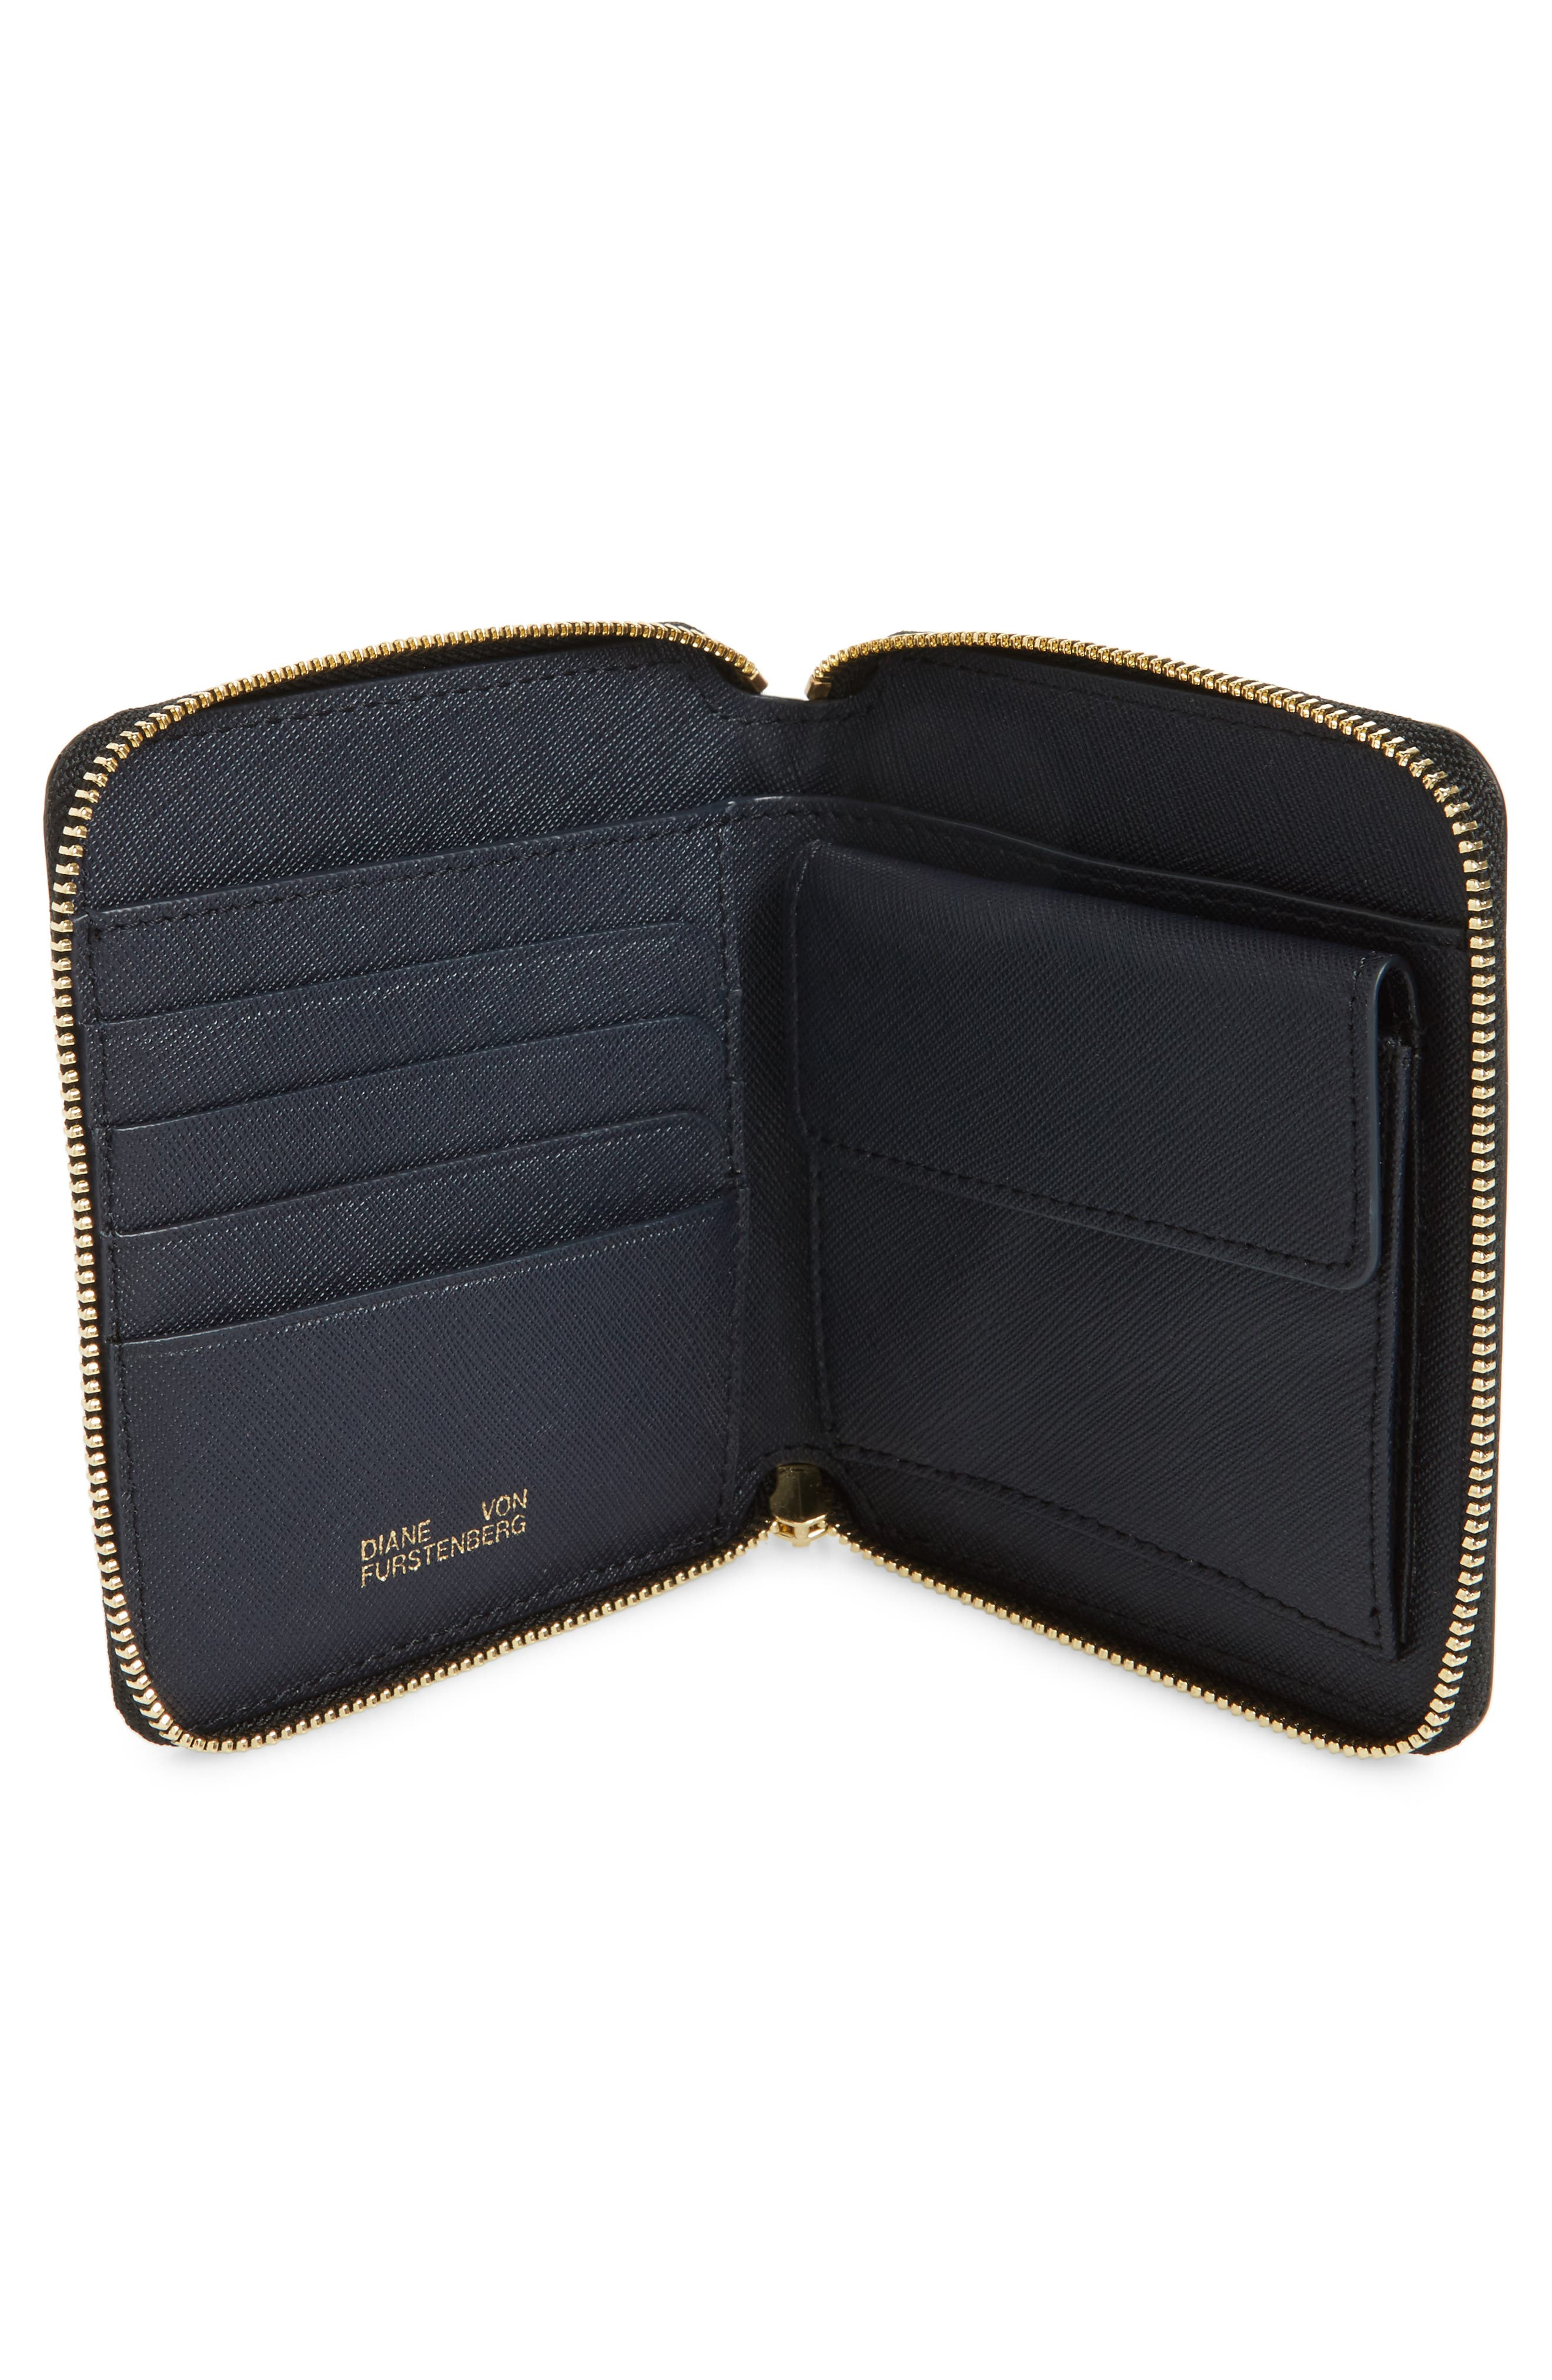 Small Leather Zip Wallet,                             Alternate thumbnail 2, color,                             Harlow Black